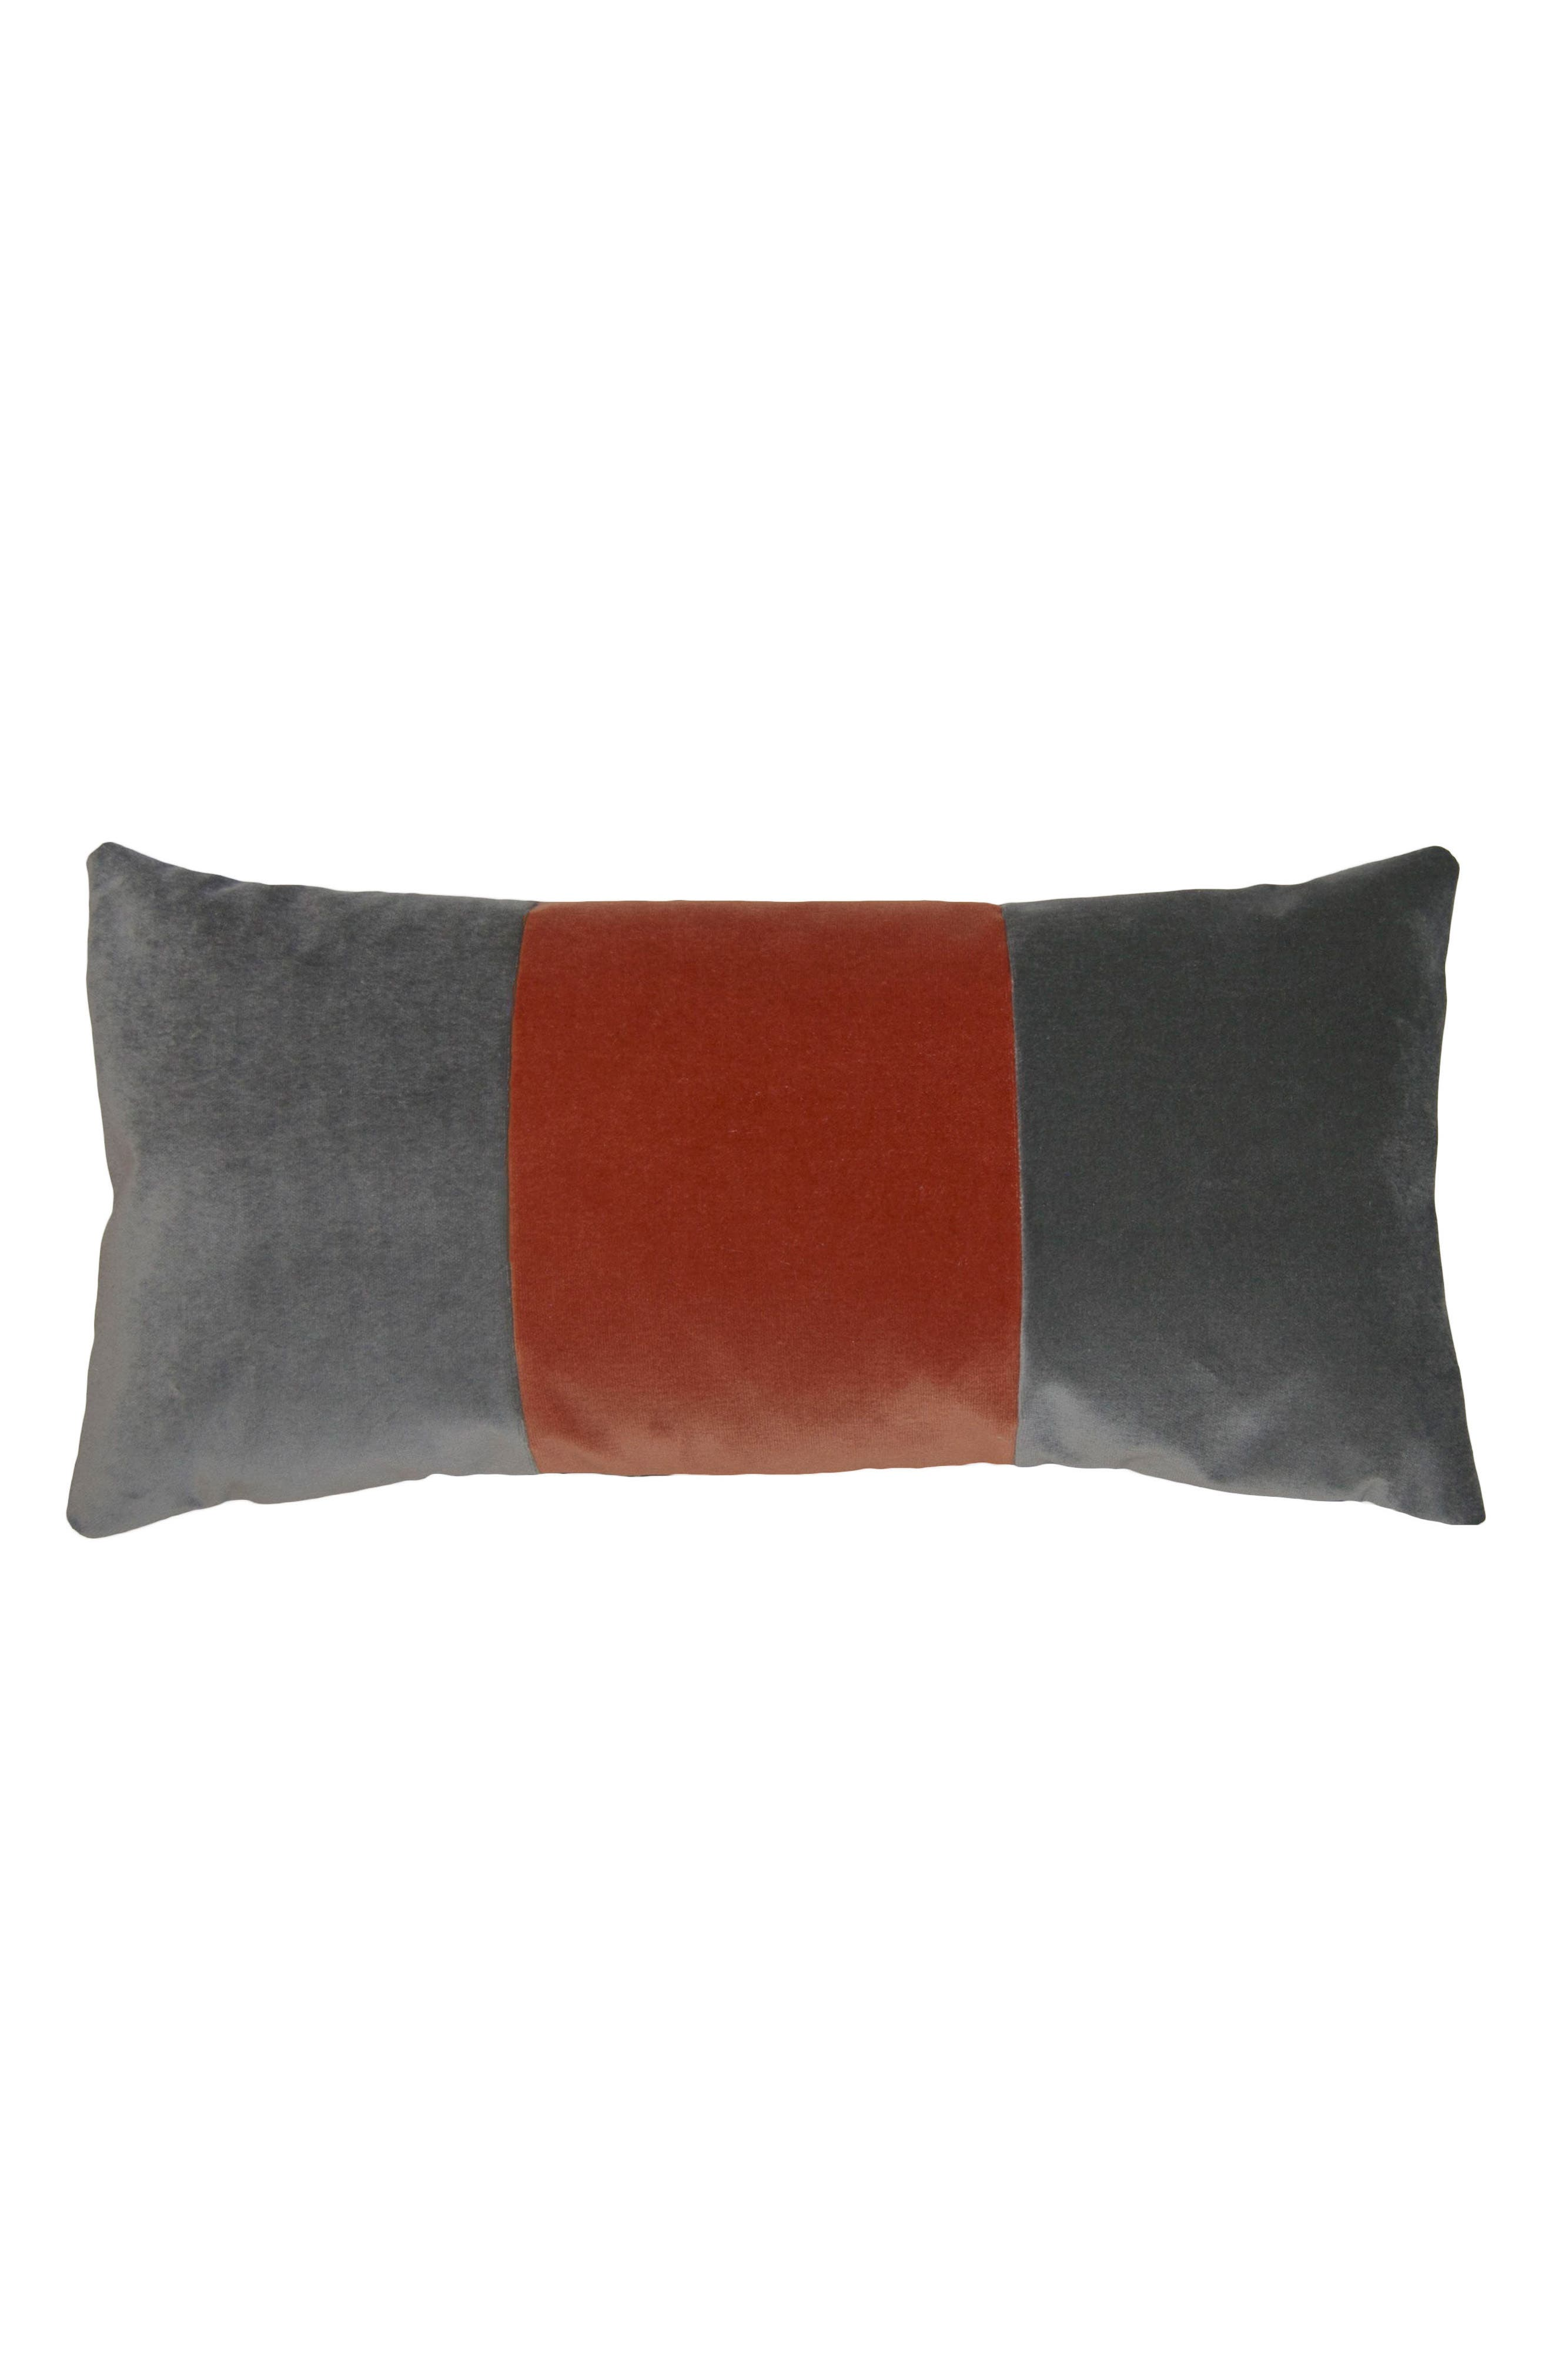 Square Feathers Tang Orange Band Accent Pillow